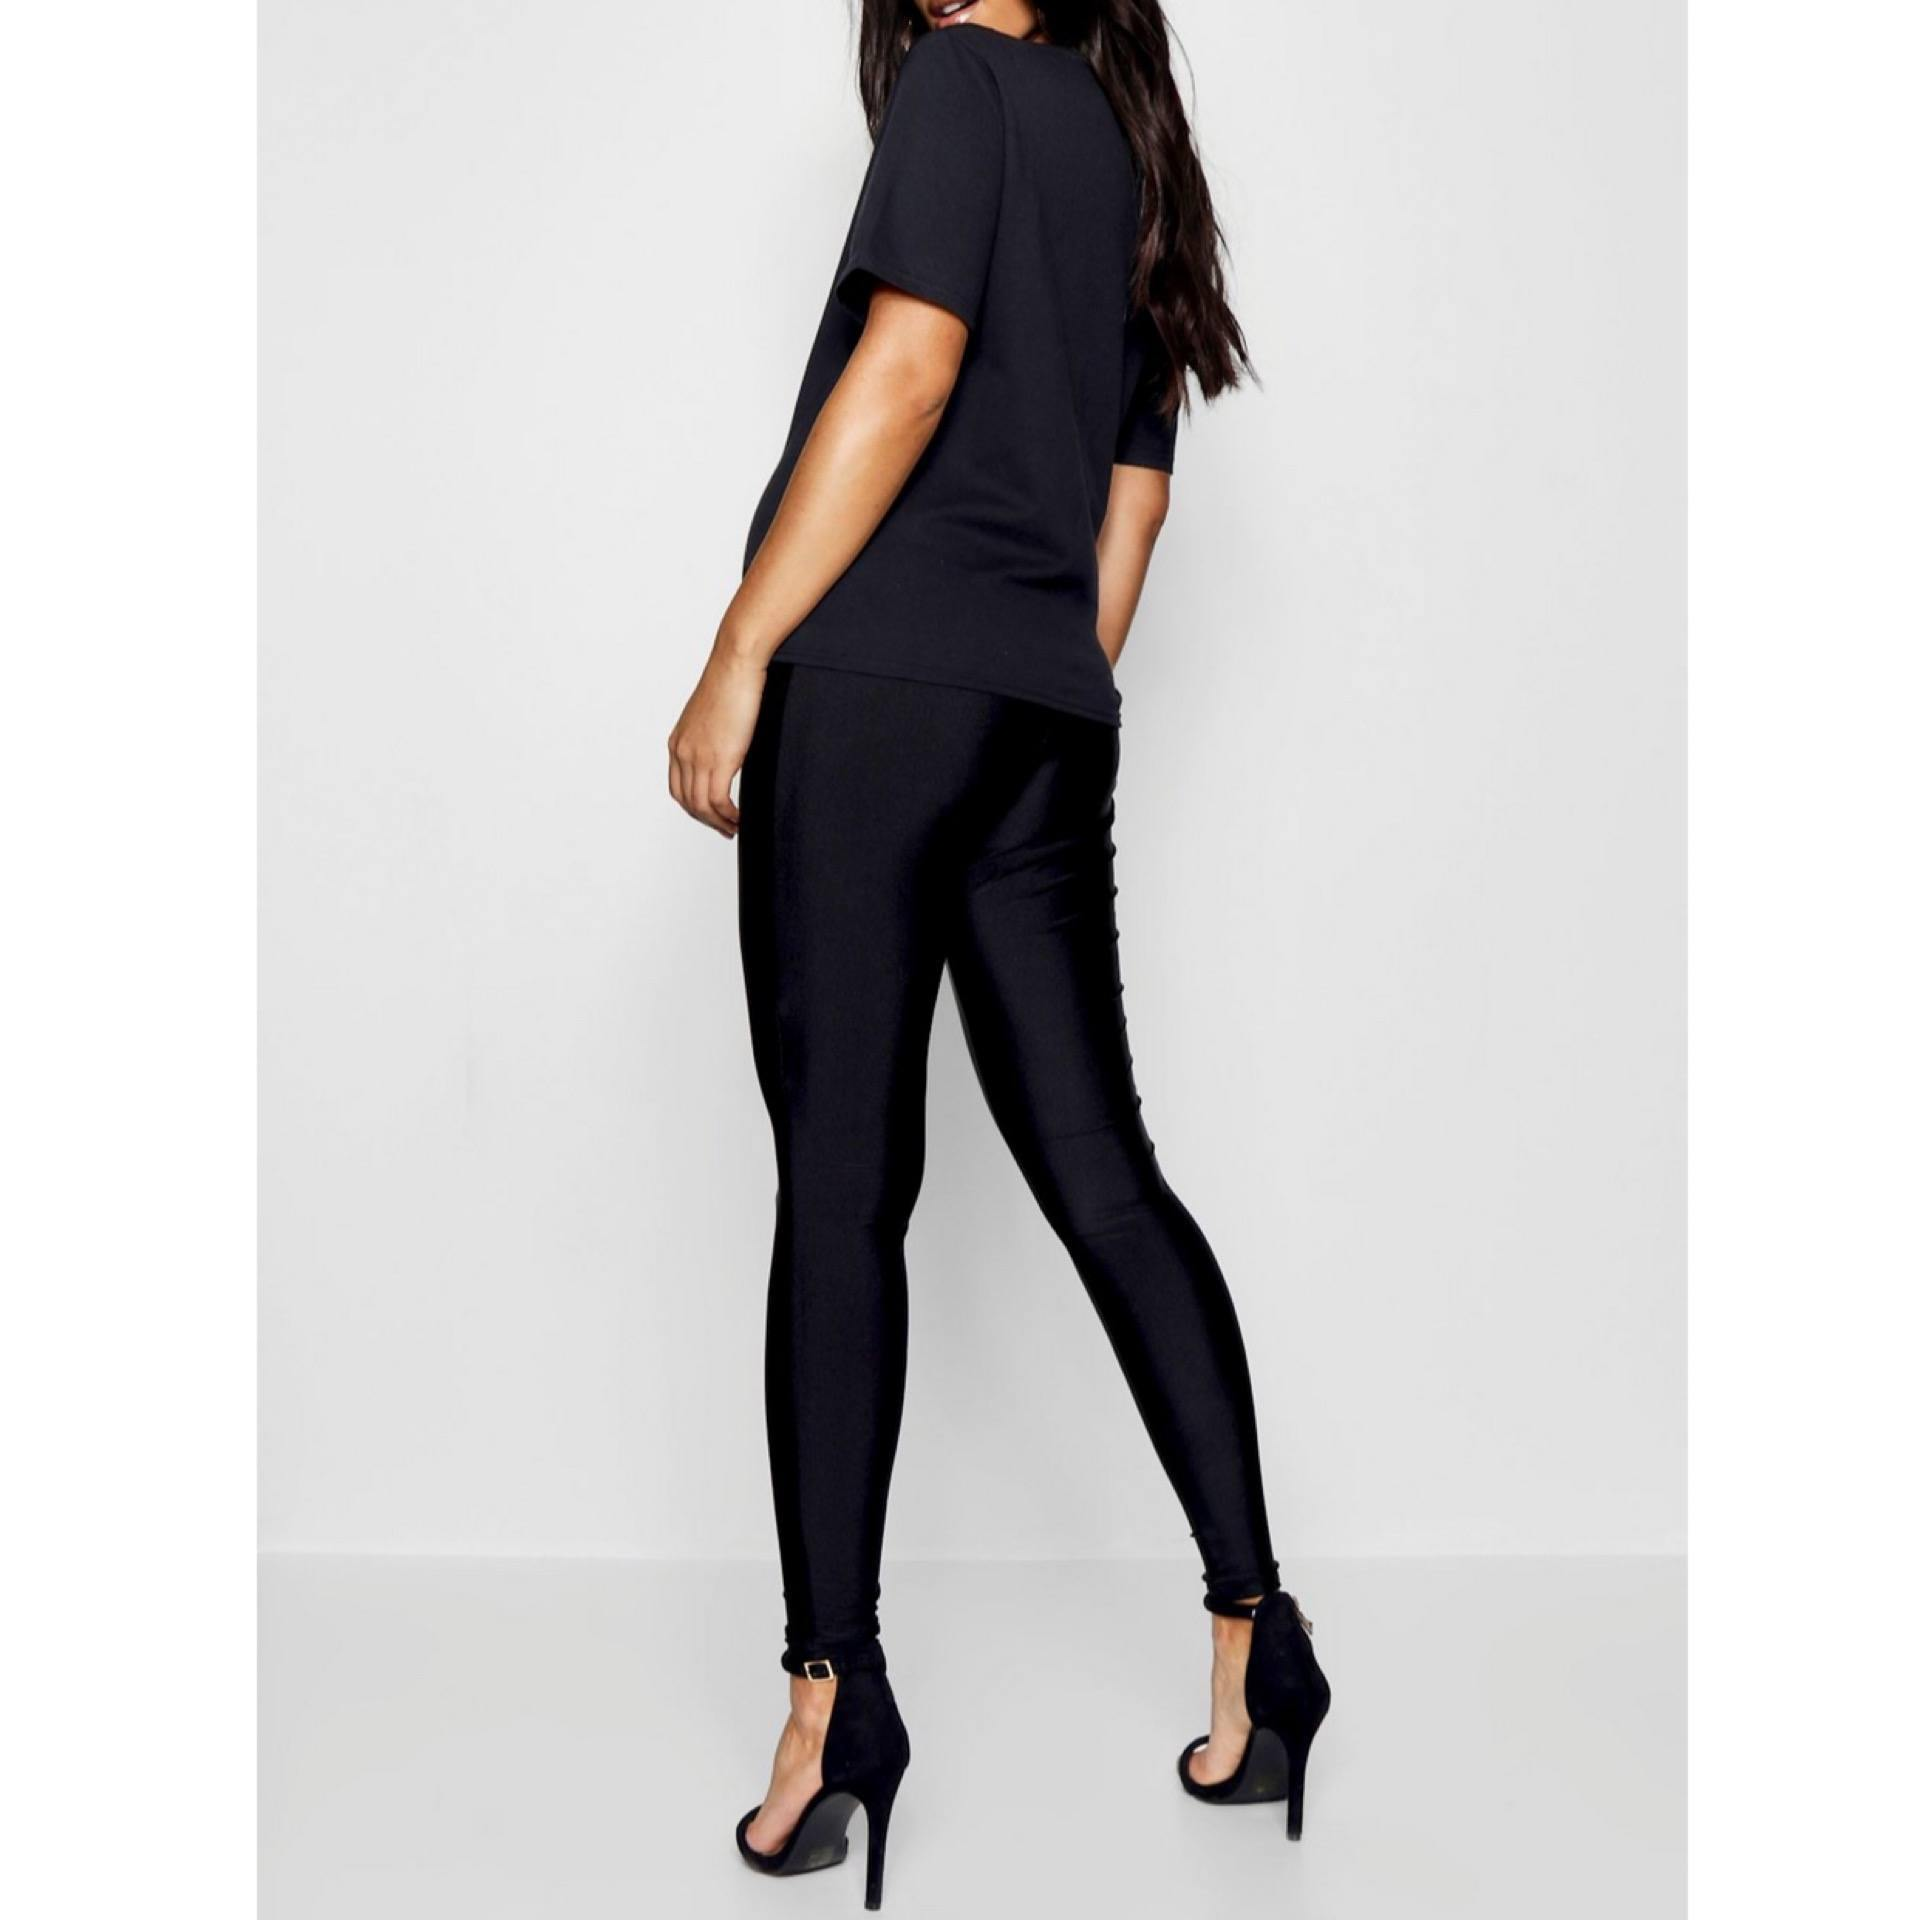 Maternity Shiny Leggings - Flamour.ro